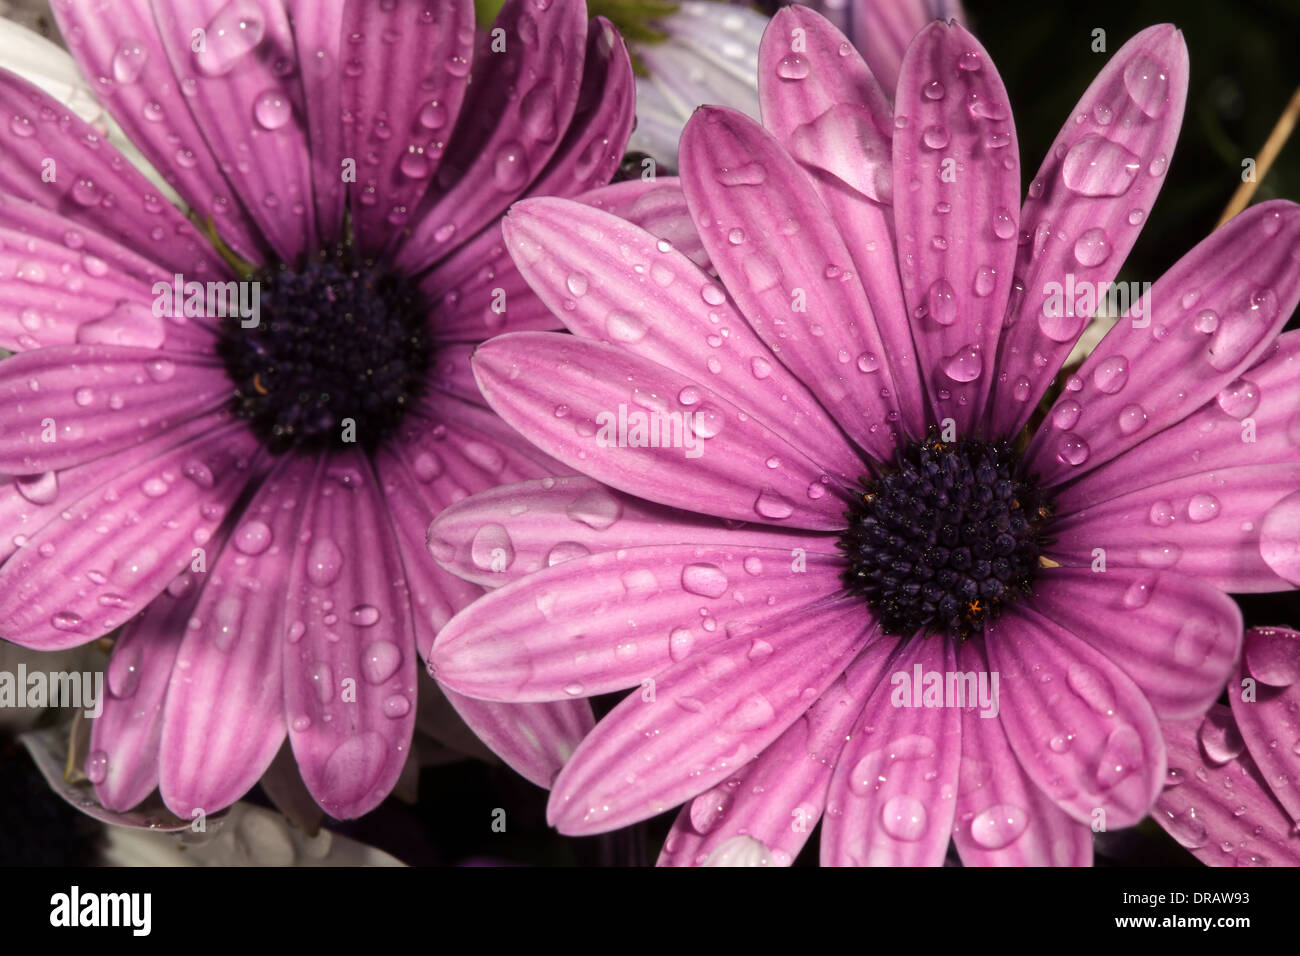 African Daisies - Stock Image